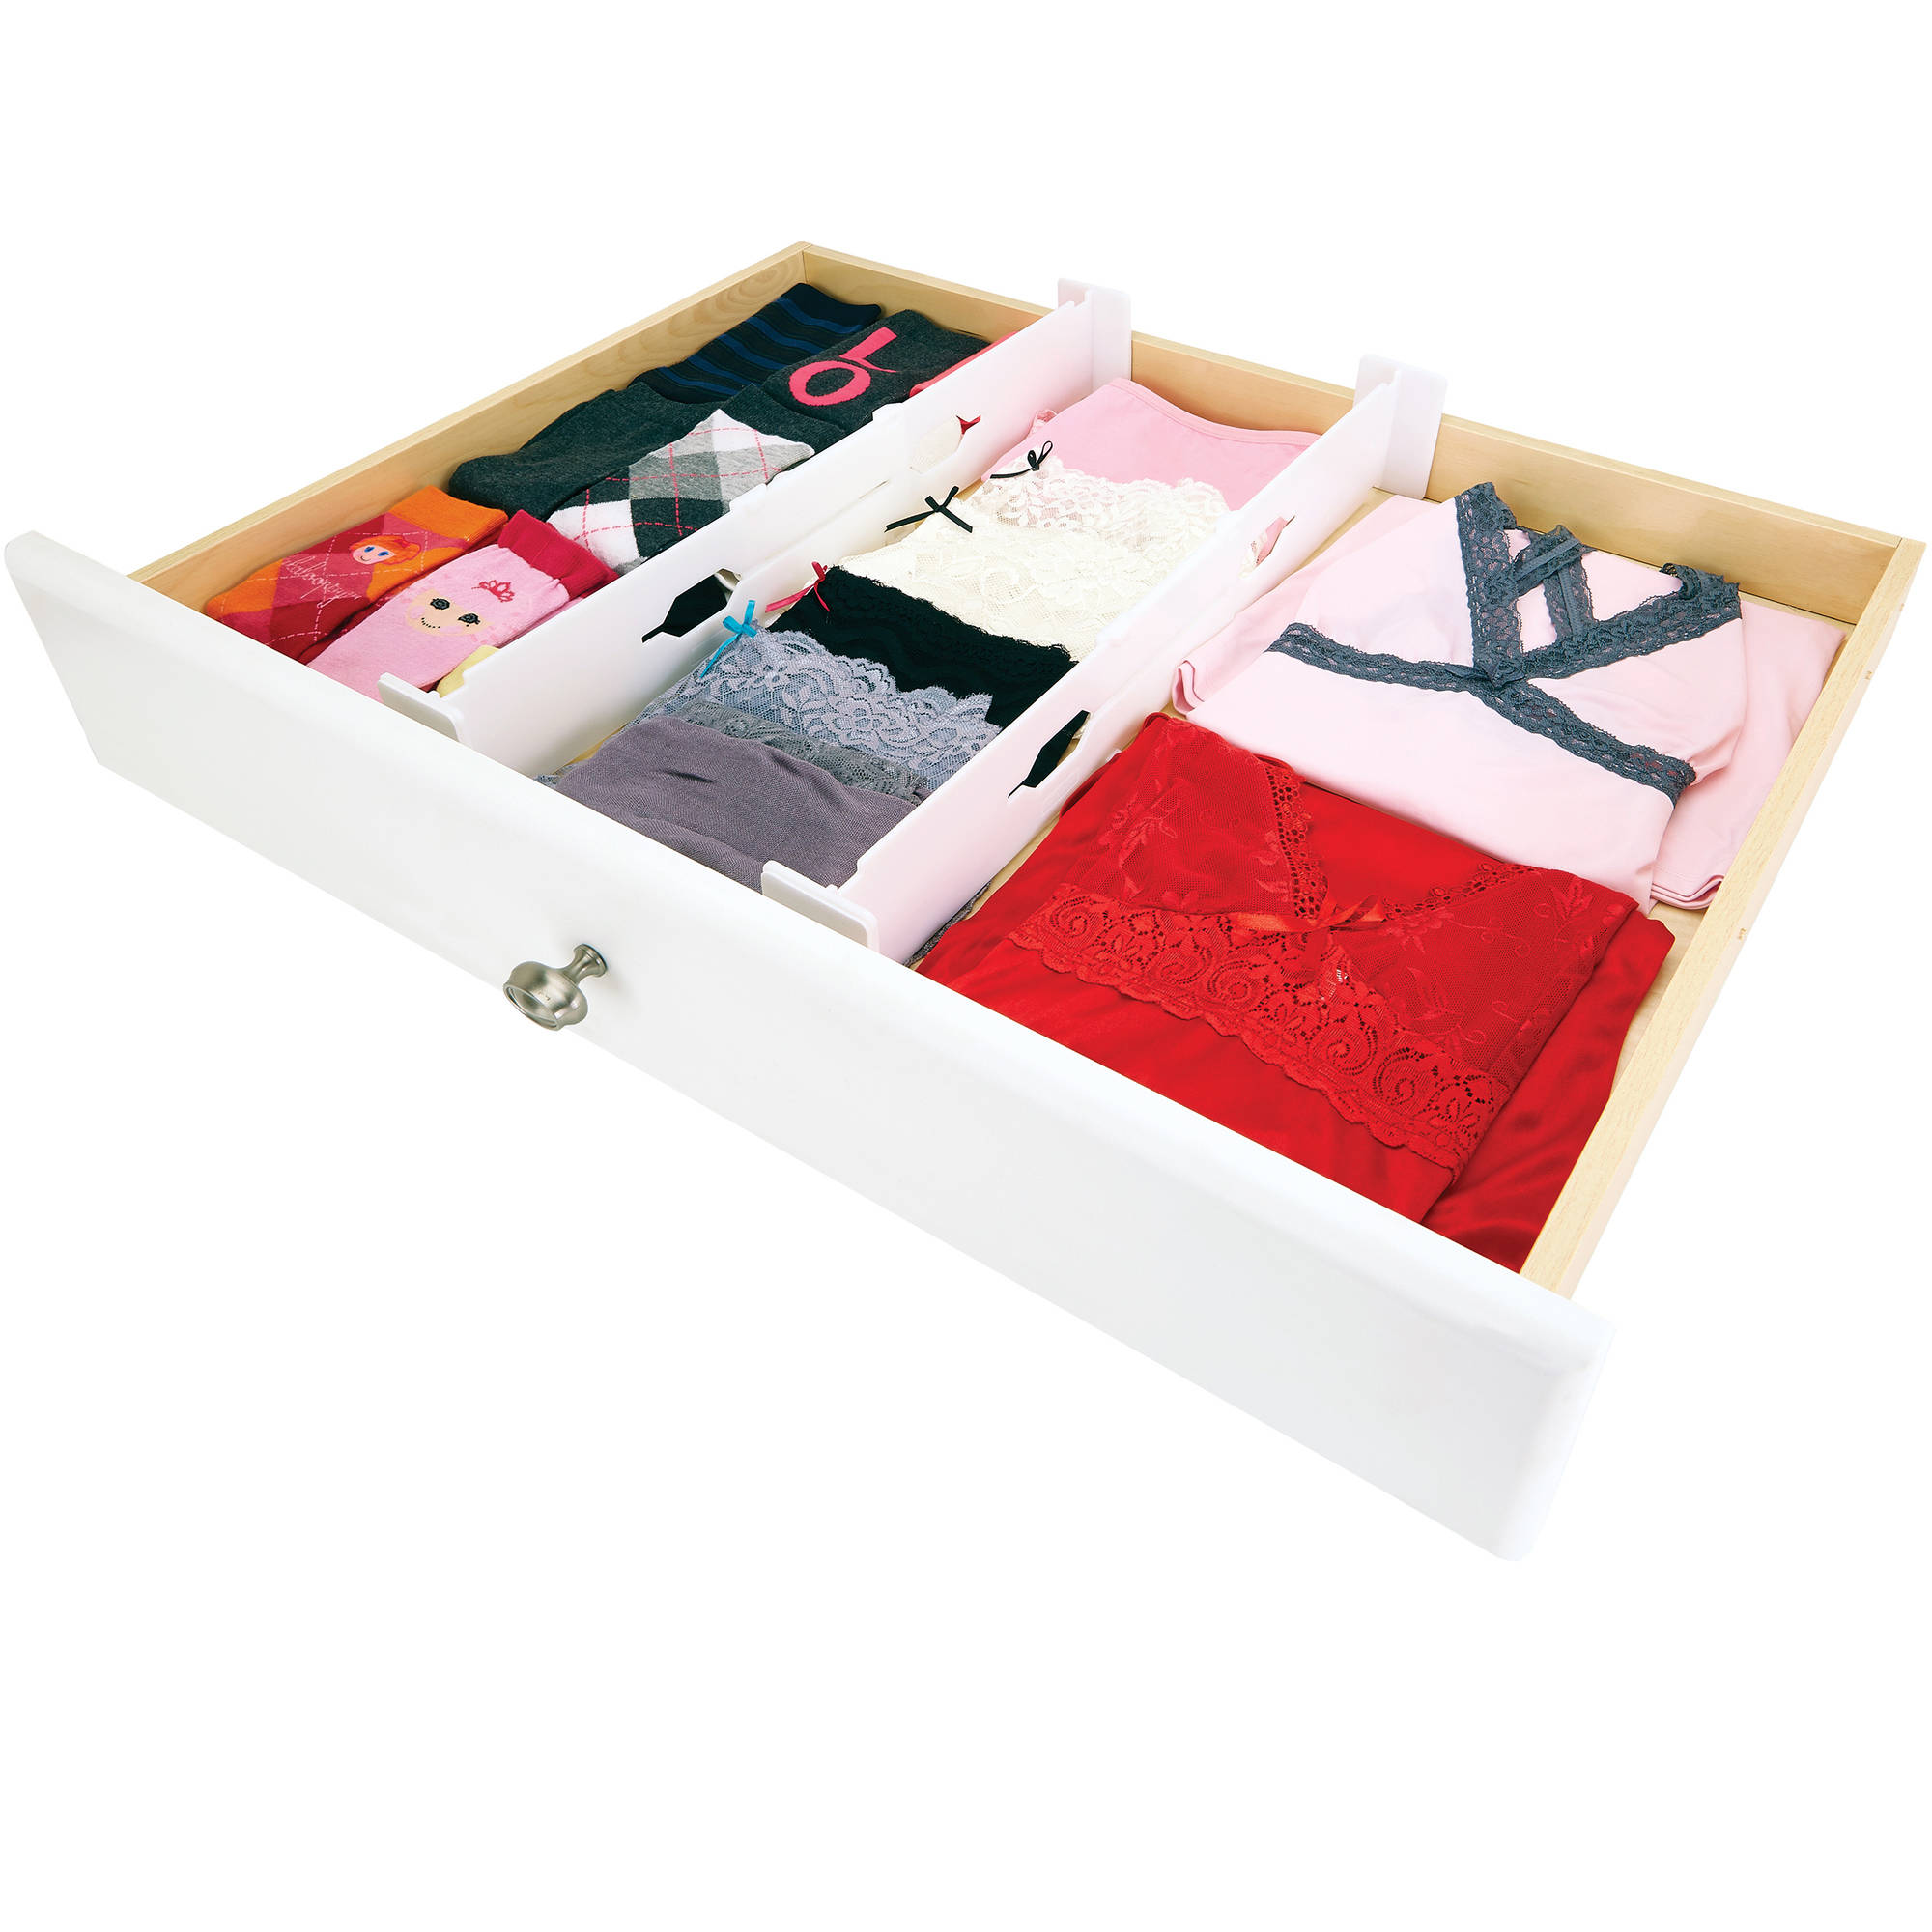 Simplify Adjustable Drawer Organizer, Set of 2